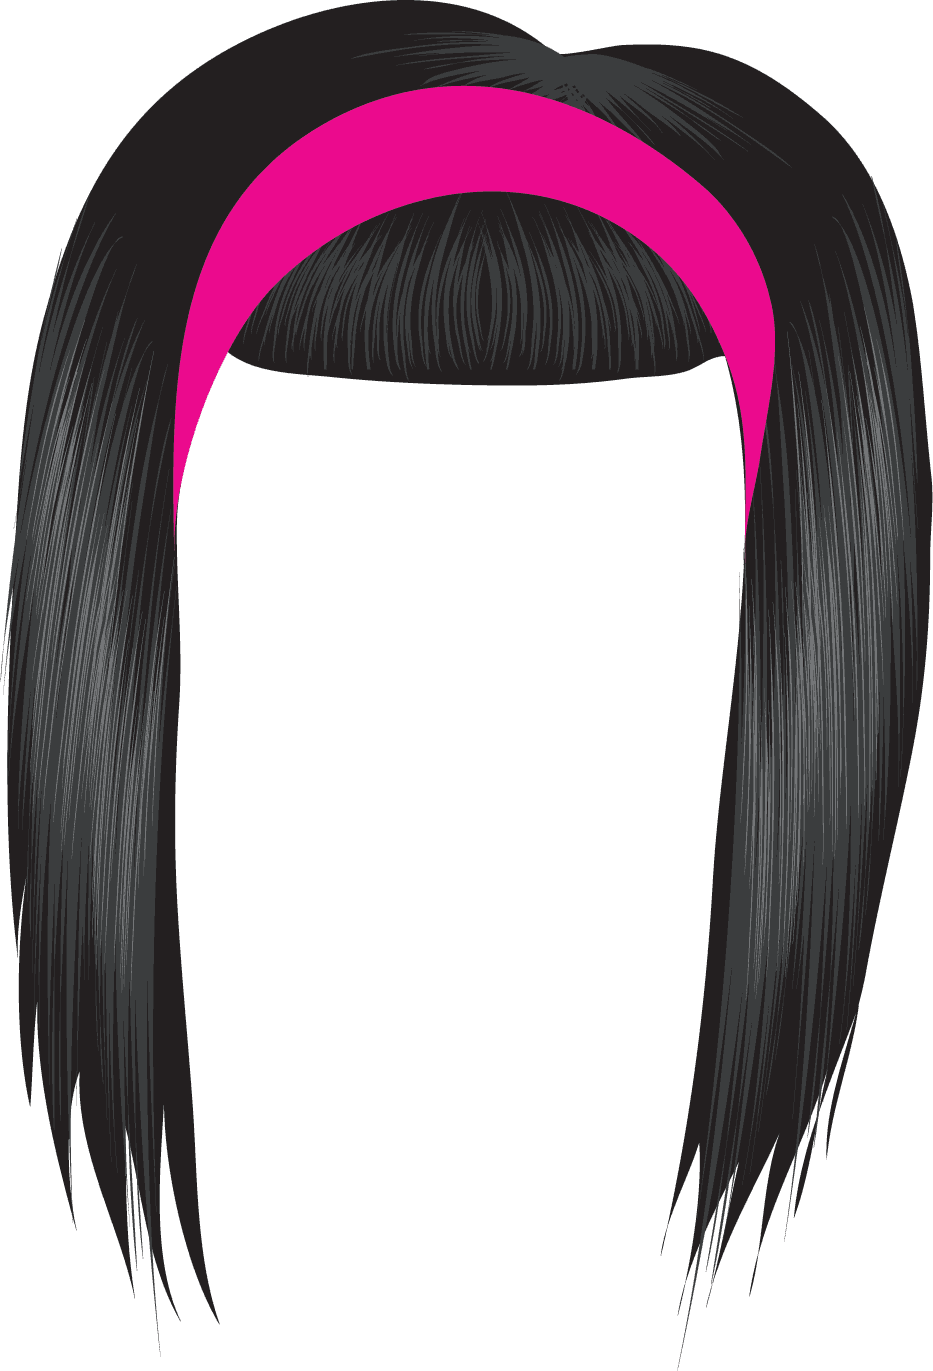 Black Hair Clipart   Clipart Panda   Free Clipart Images